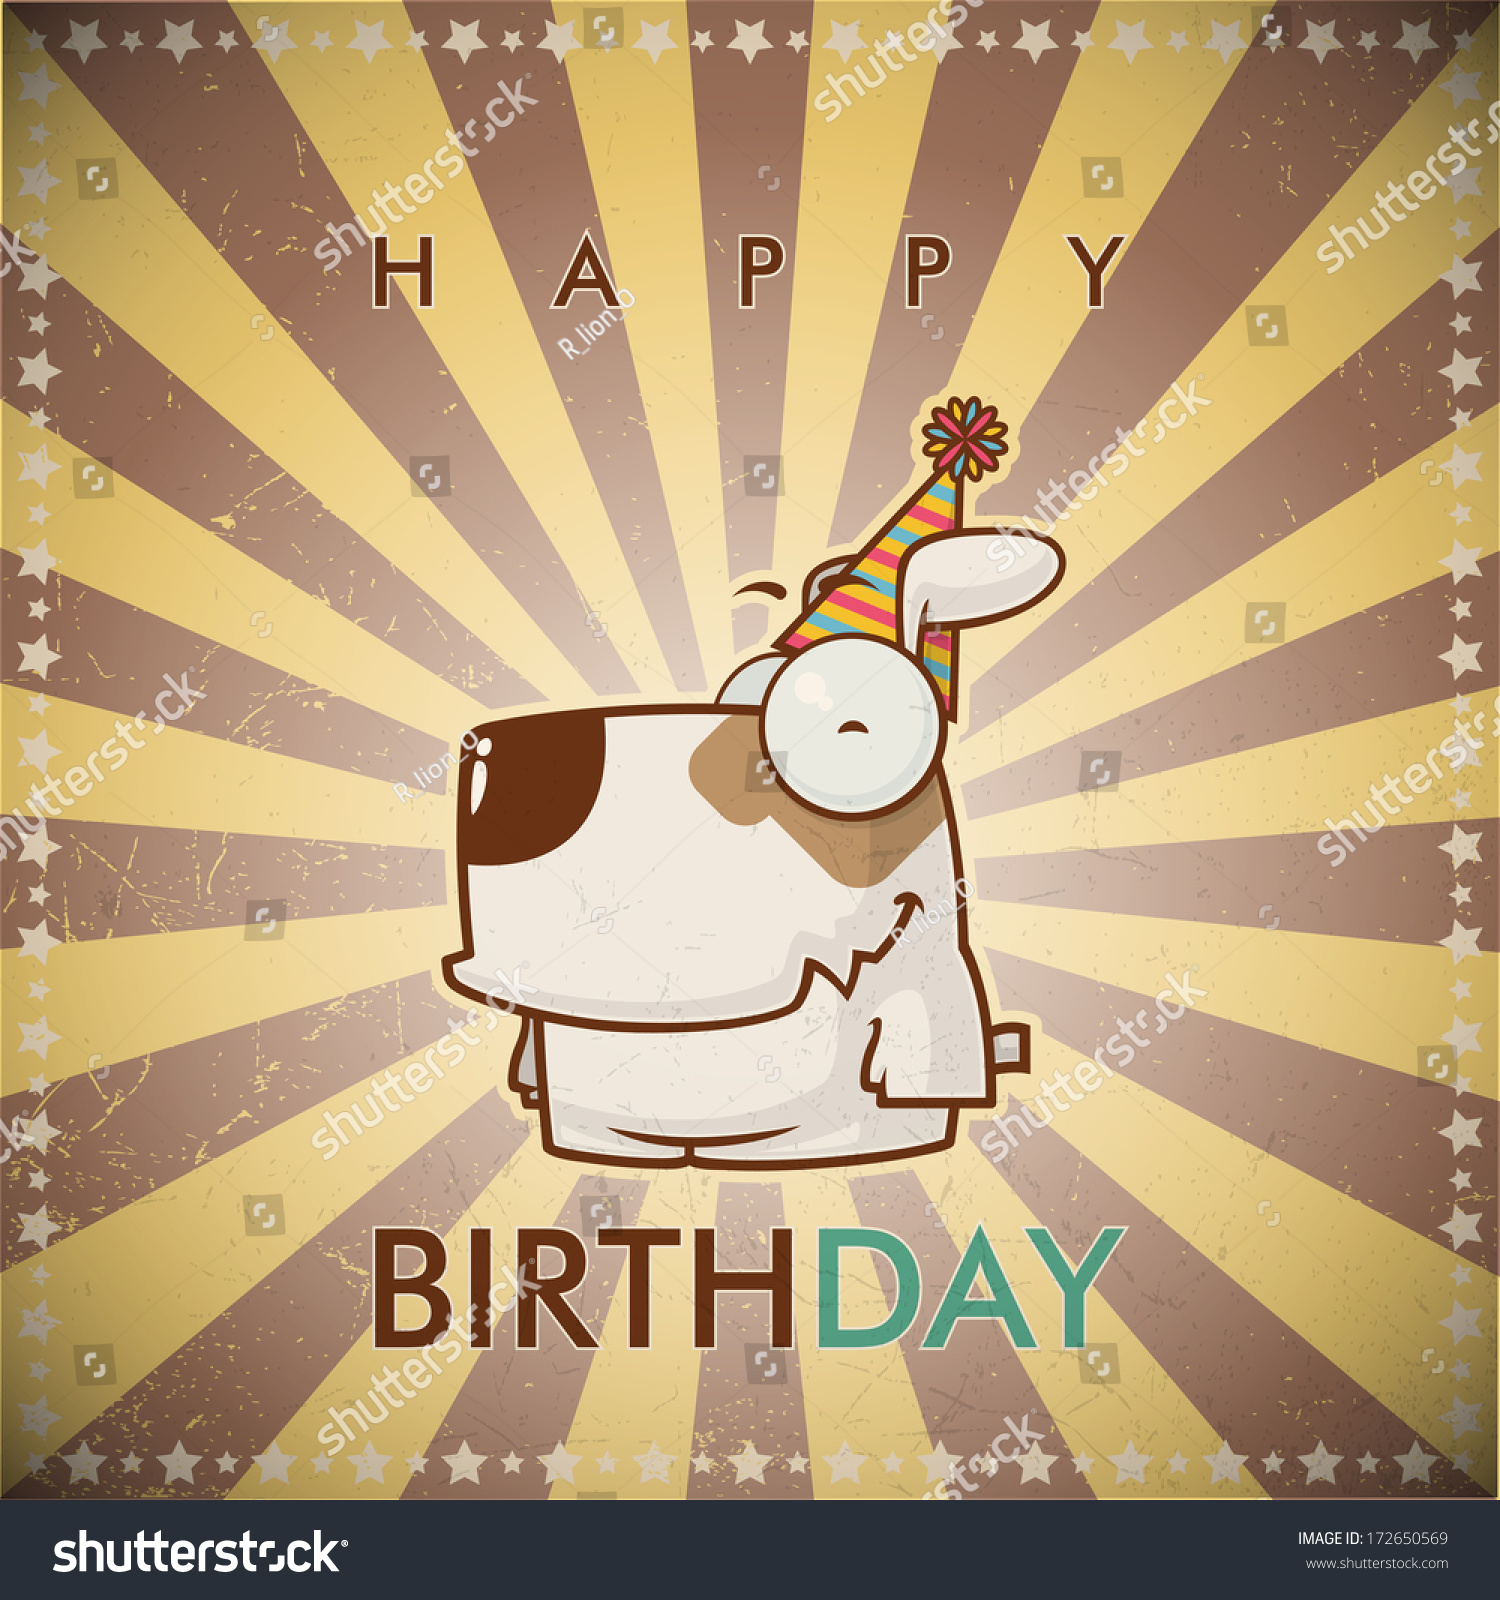 Funny Happy Birthday Greeting Card With Cute Cartoon Dogs